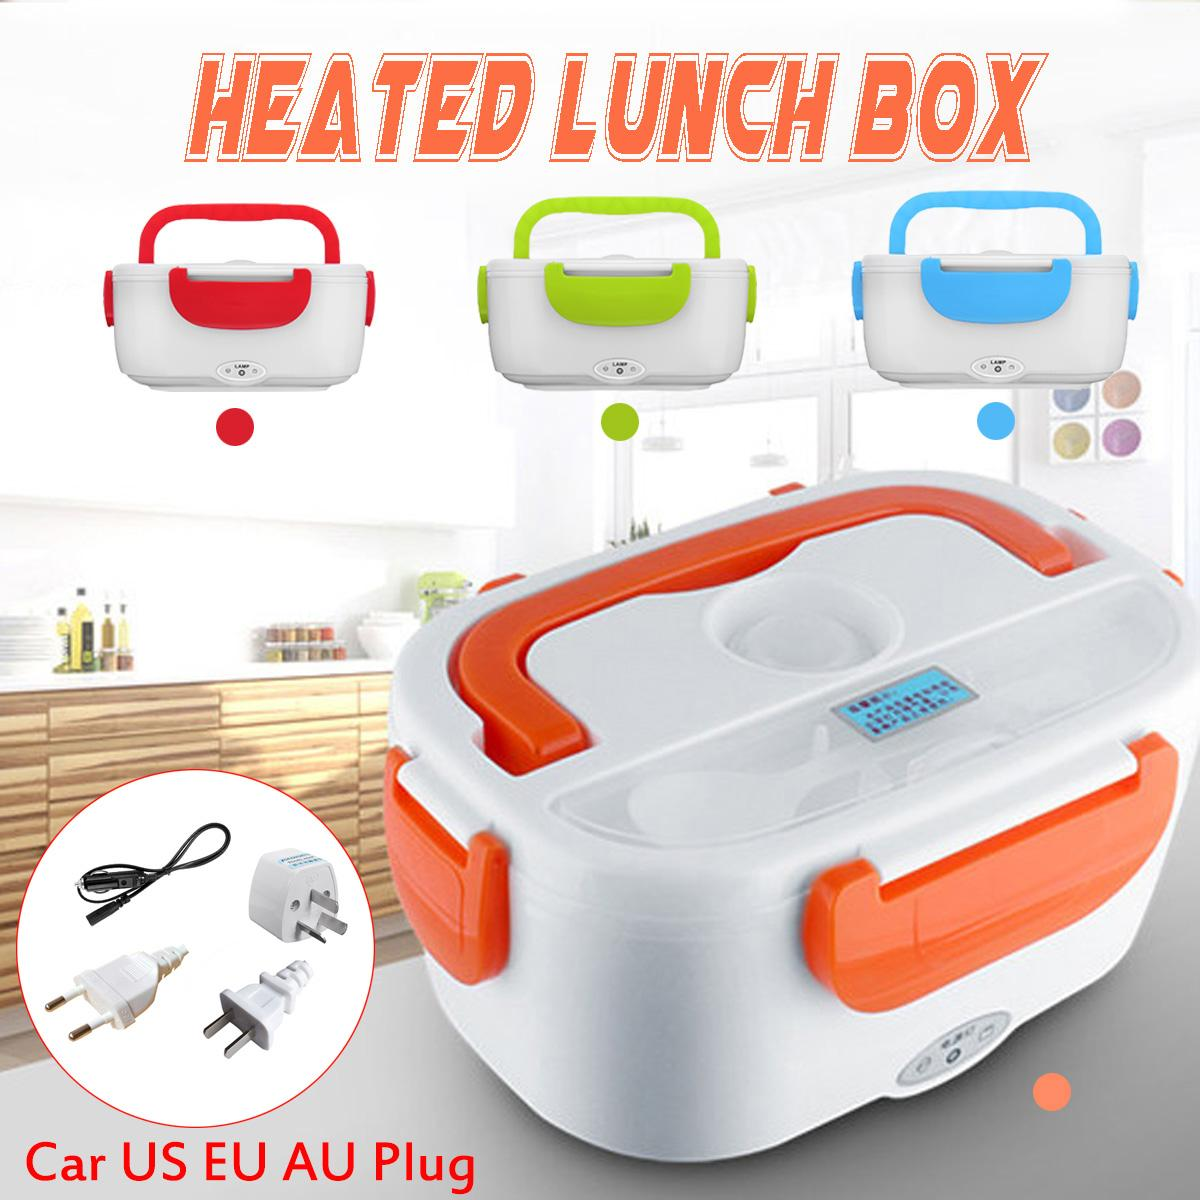 Top 10 Most Popular Electric Lunch Box Set Near Me And Get Free Shipping Munwodaa 80